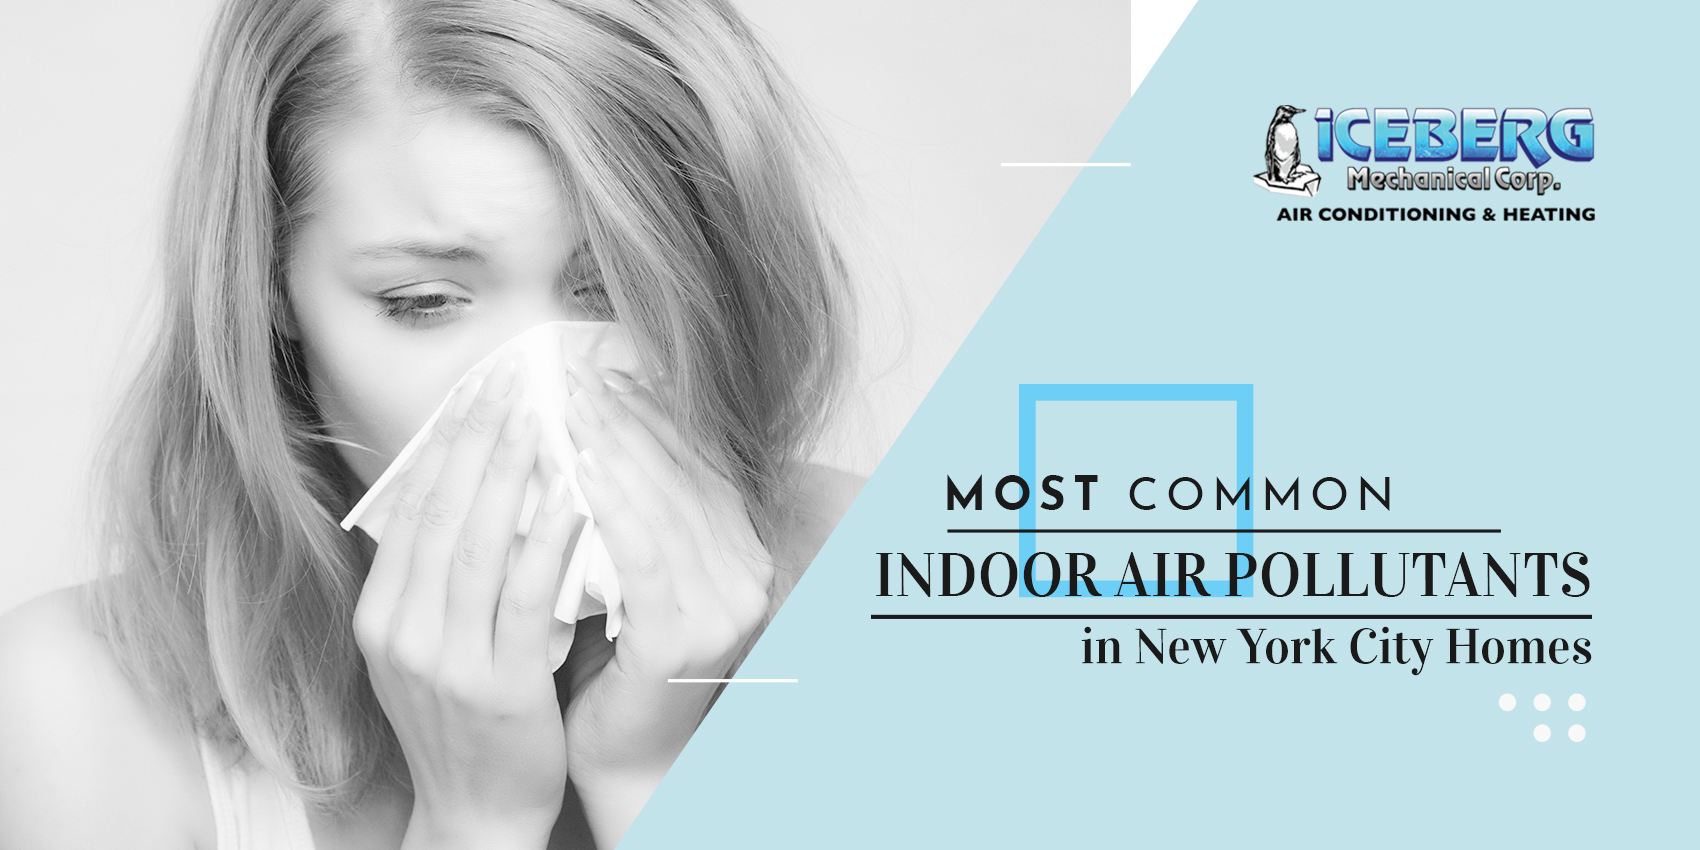 Most Common Indoor Air Pollutants in New York City Home